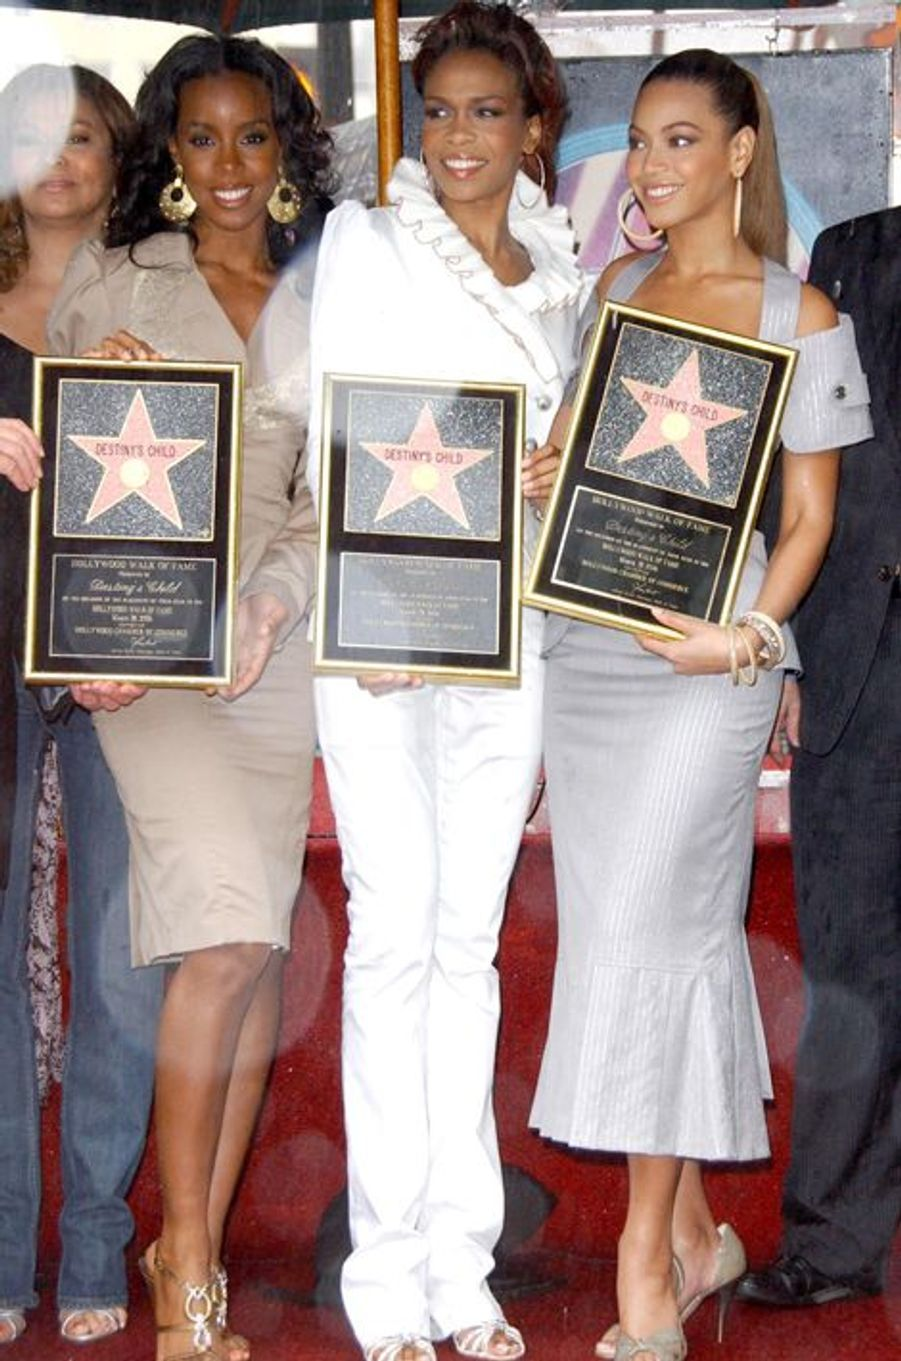 Le groupe Destiny's Child reçoit son étoile sur le Hollywood Walk of Fame, 28 mars 2006.